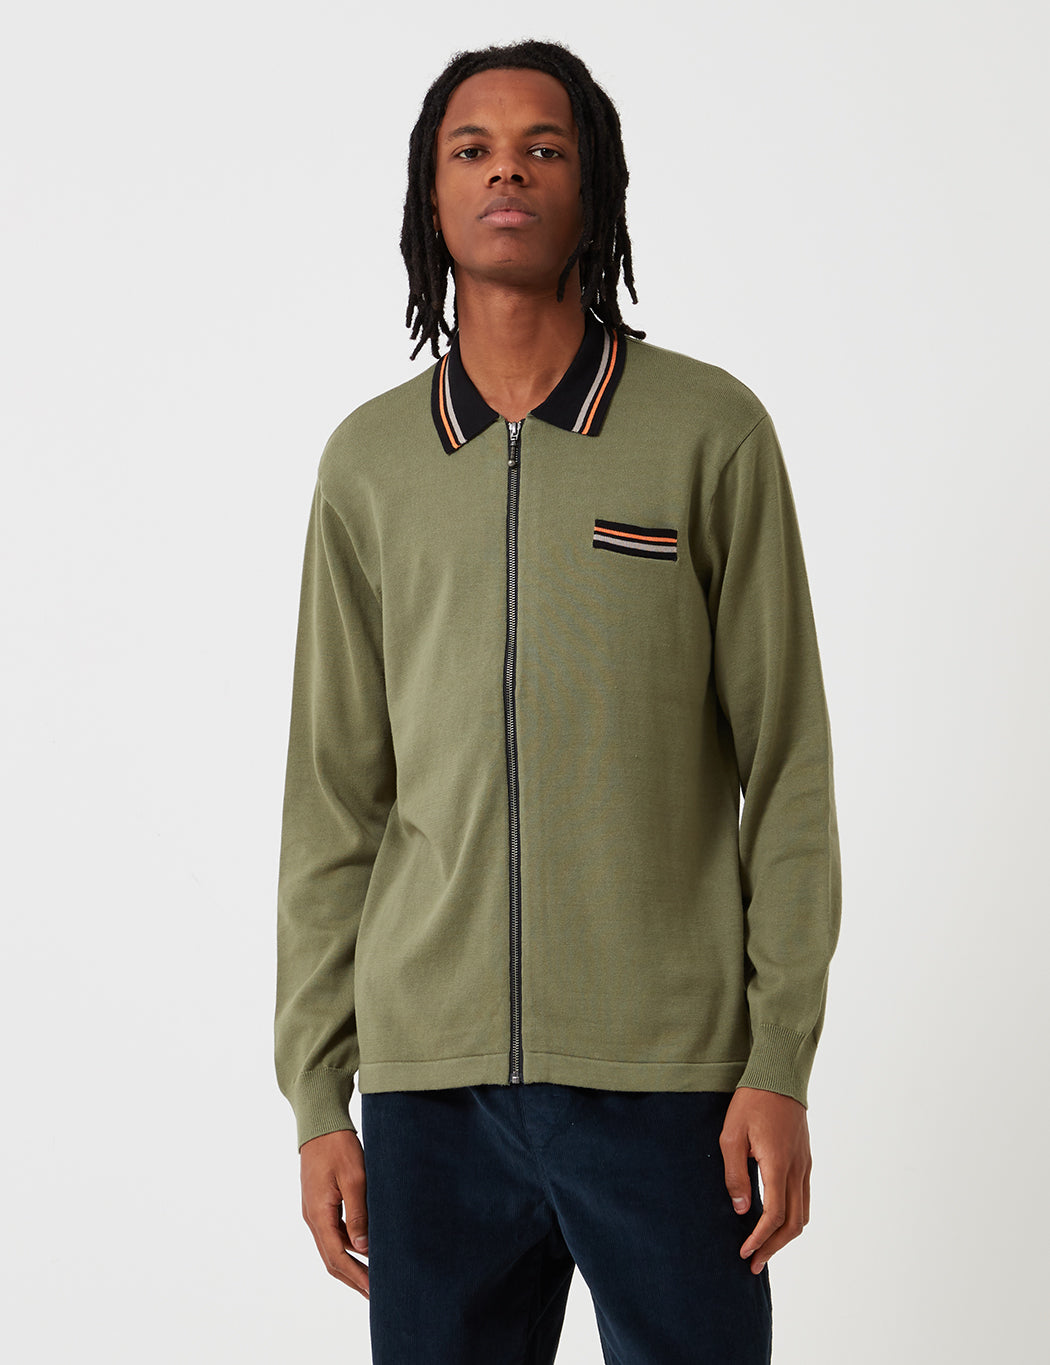 6dbe7f831eccf Stussy Perry Zip Long Sleeve Knit Polo Shirt in Olive Green